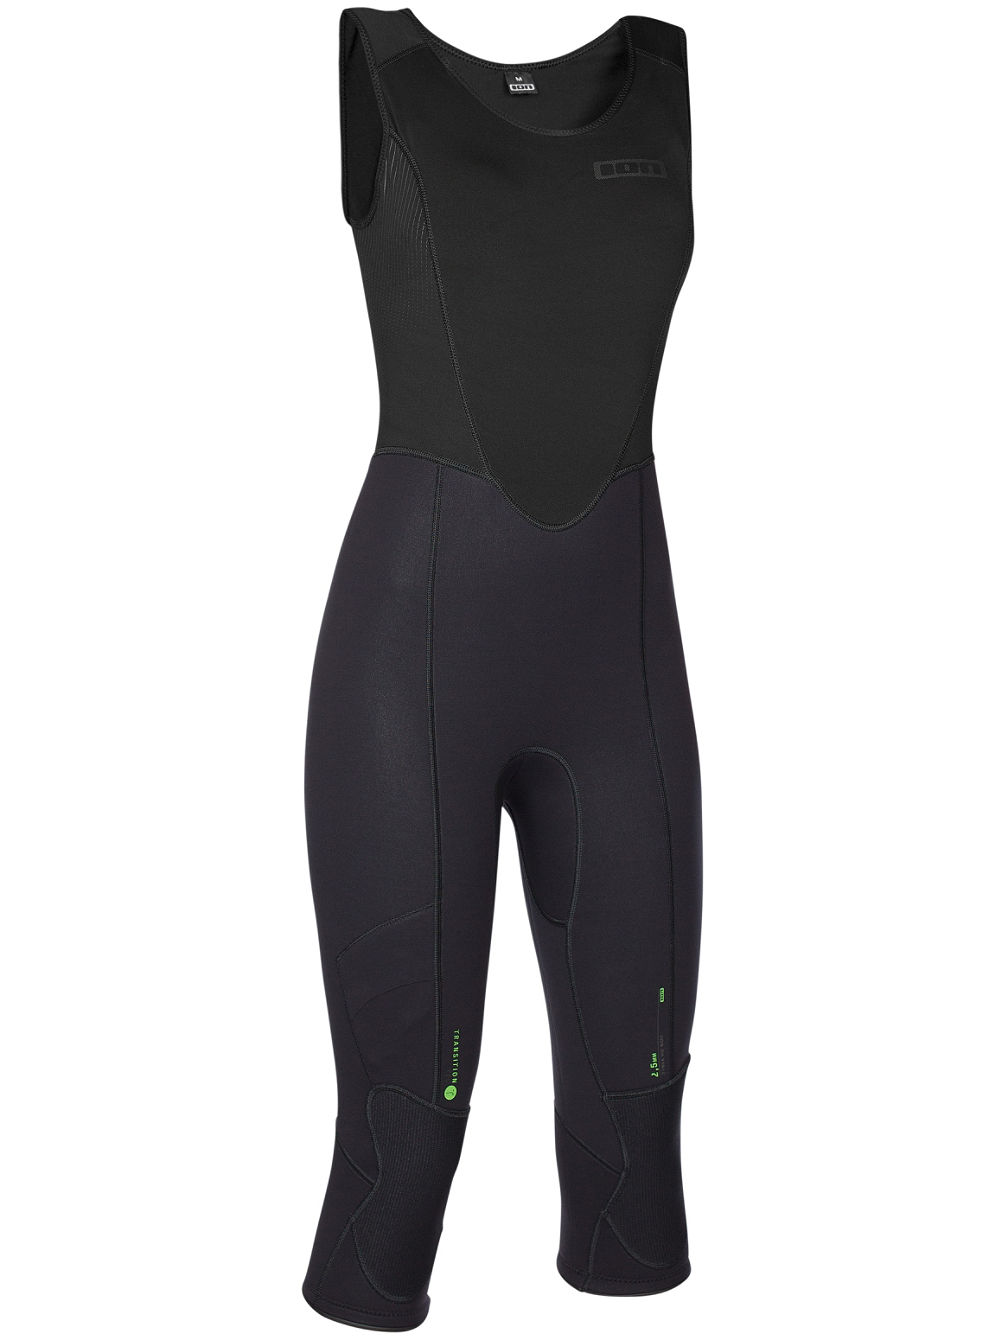 Mid Mary 2.5 Wetsuit